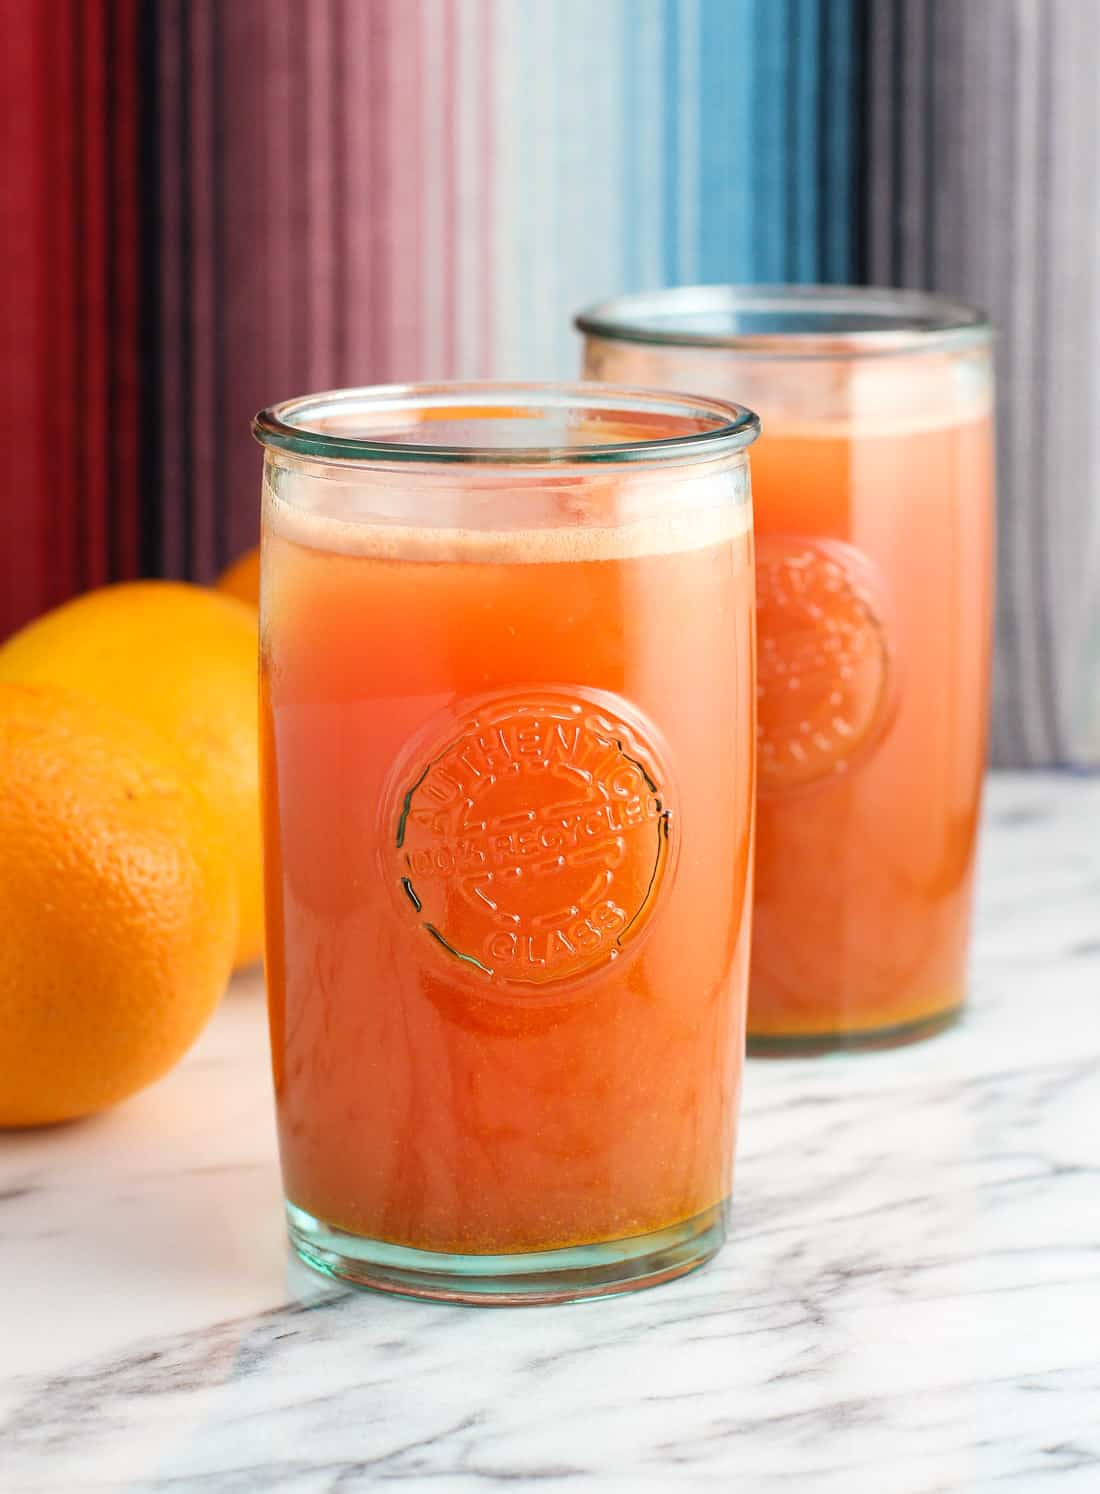 Glasses of juice with fresh oranges on a table.